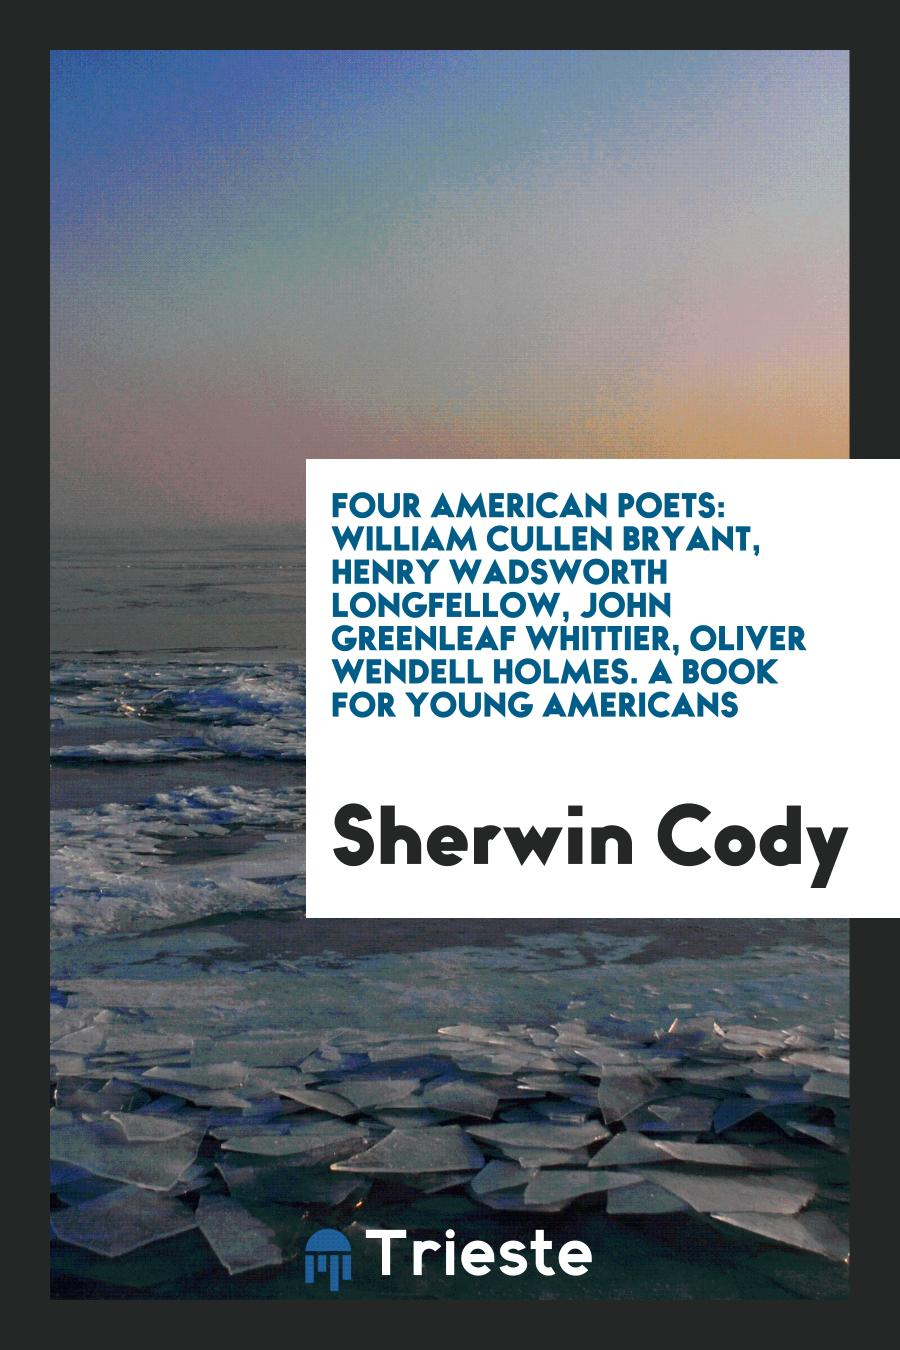 Sherwin Cody - Four American Poets: William Cullen Bryant, Henry Wadsworth Longfellow, John Greenleaf Whittier, Oliver Wendell Holmes. A Book for Young Americans